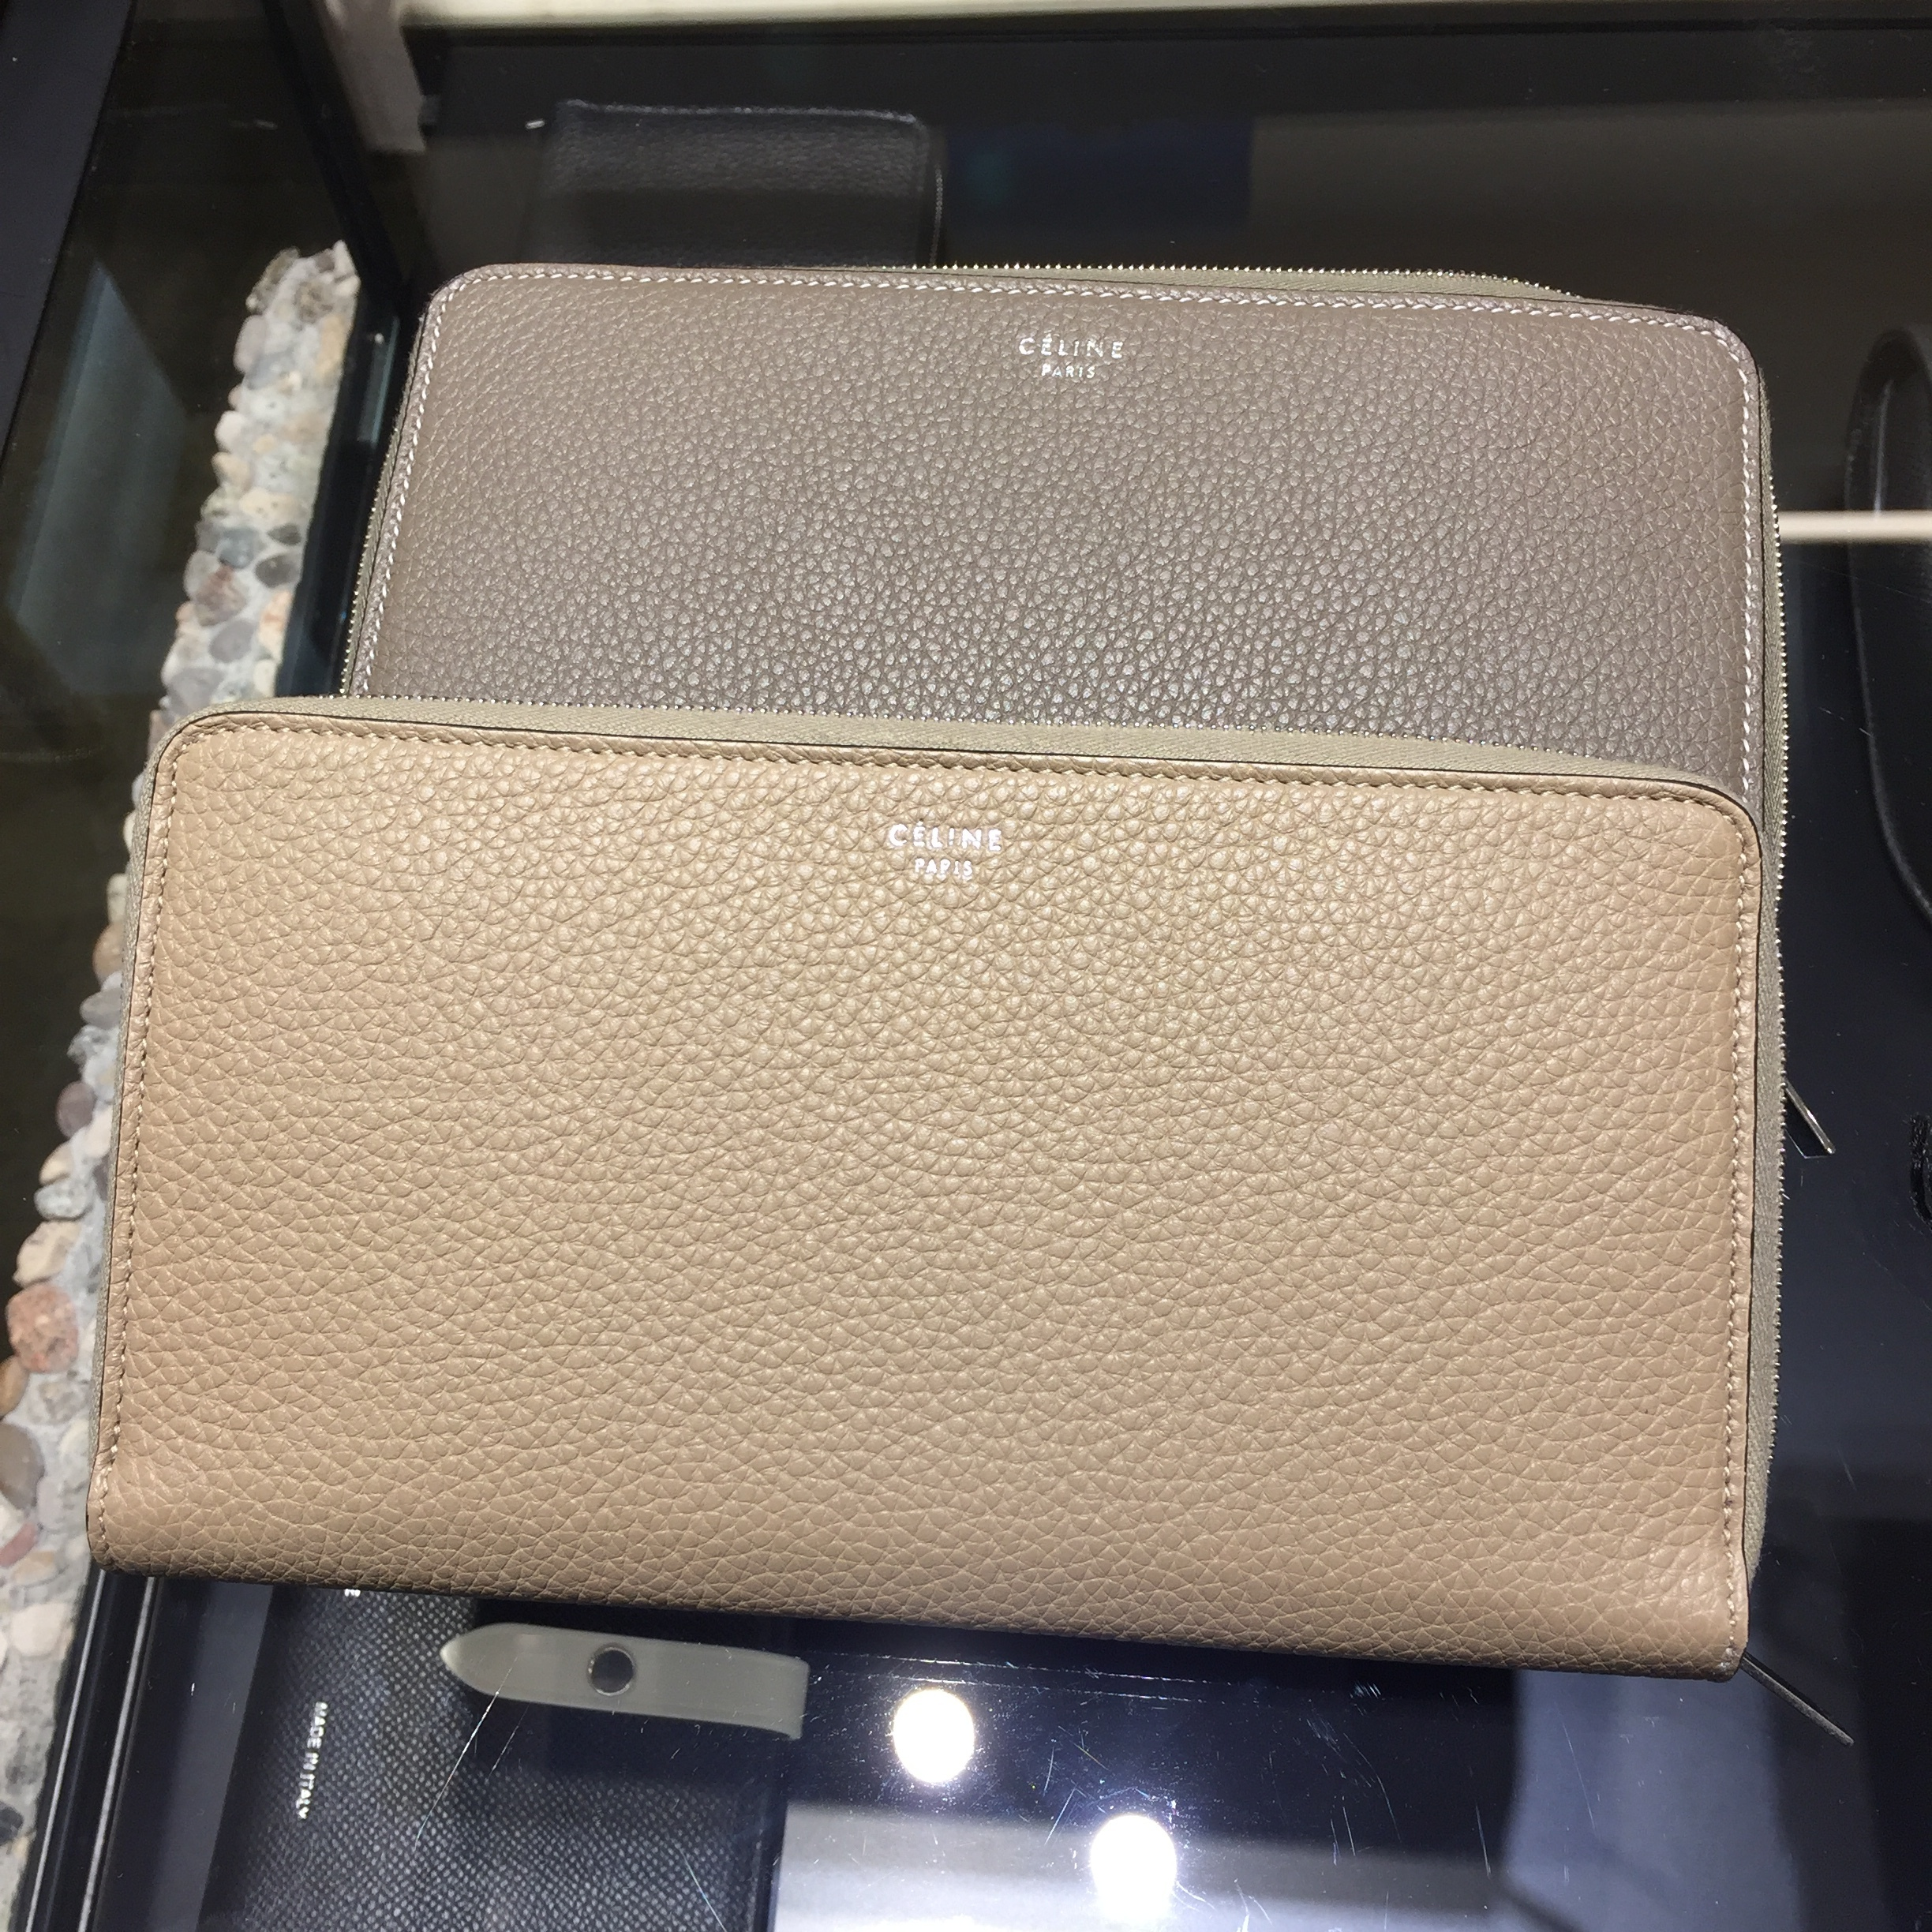 Celine【Zipped Multifunction Wallet】ラウンドジップ 長財布